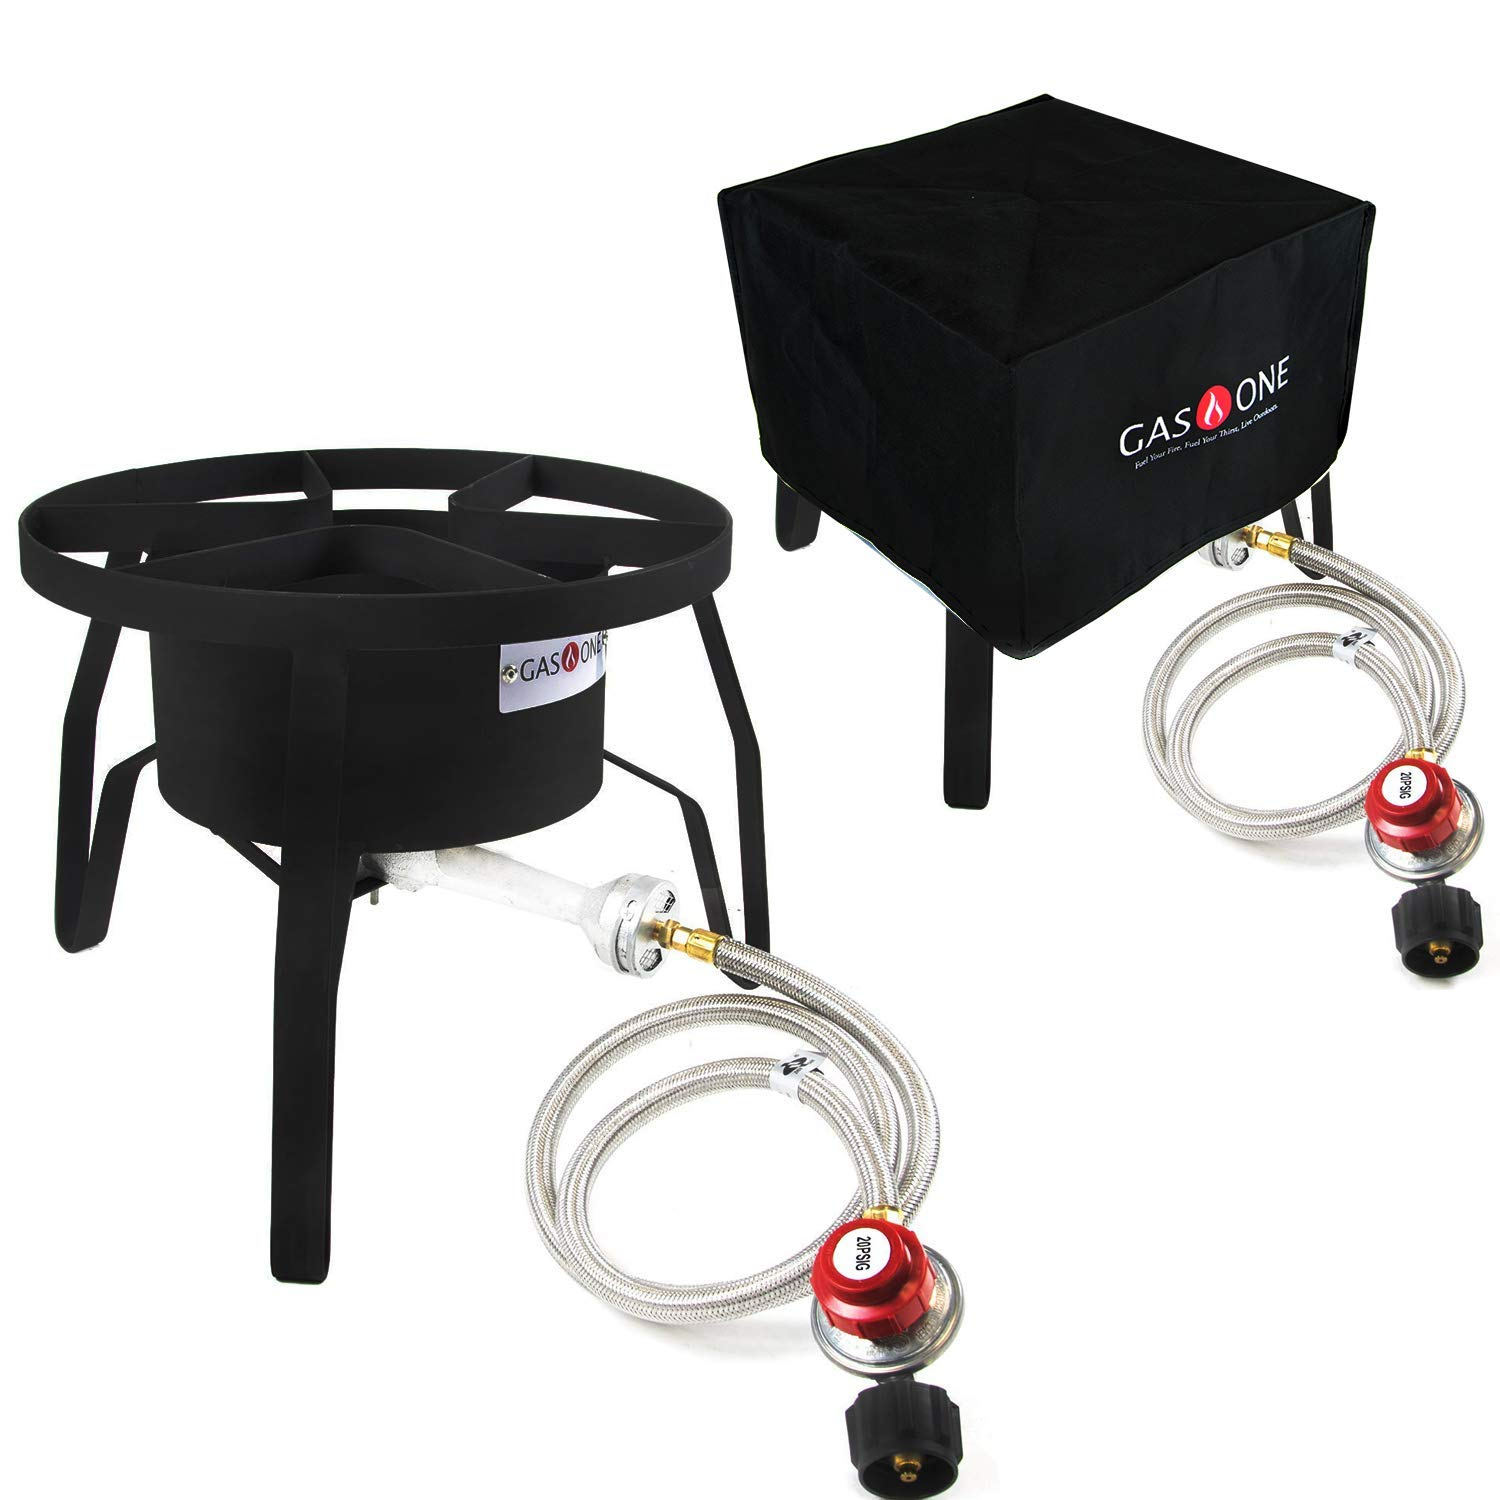 GasOne Propane Burner with Cover High-Pressure Outdoor Propane Burner Gas Cooker Welded Frame No Assembly Required 0-20 PSI Perfect for Camp Stove